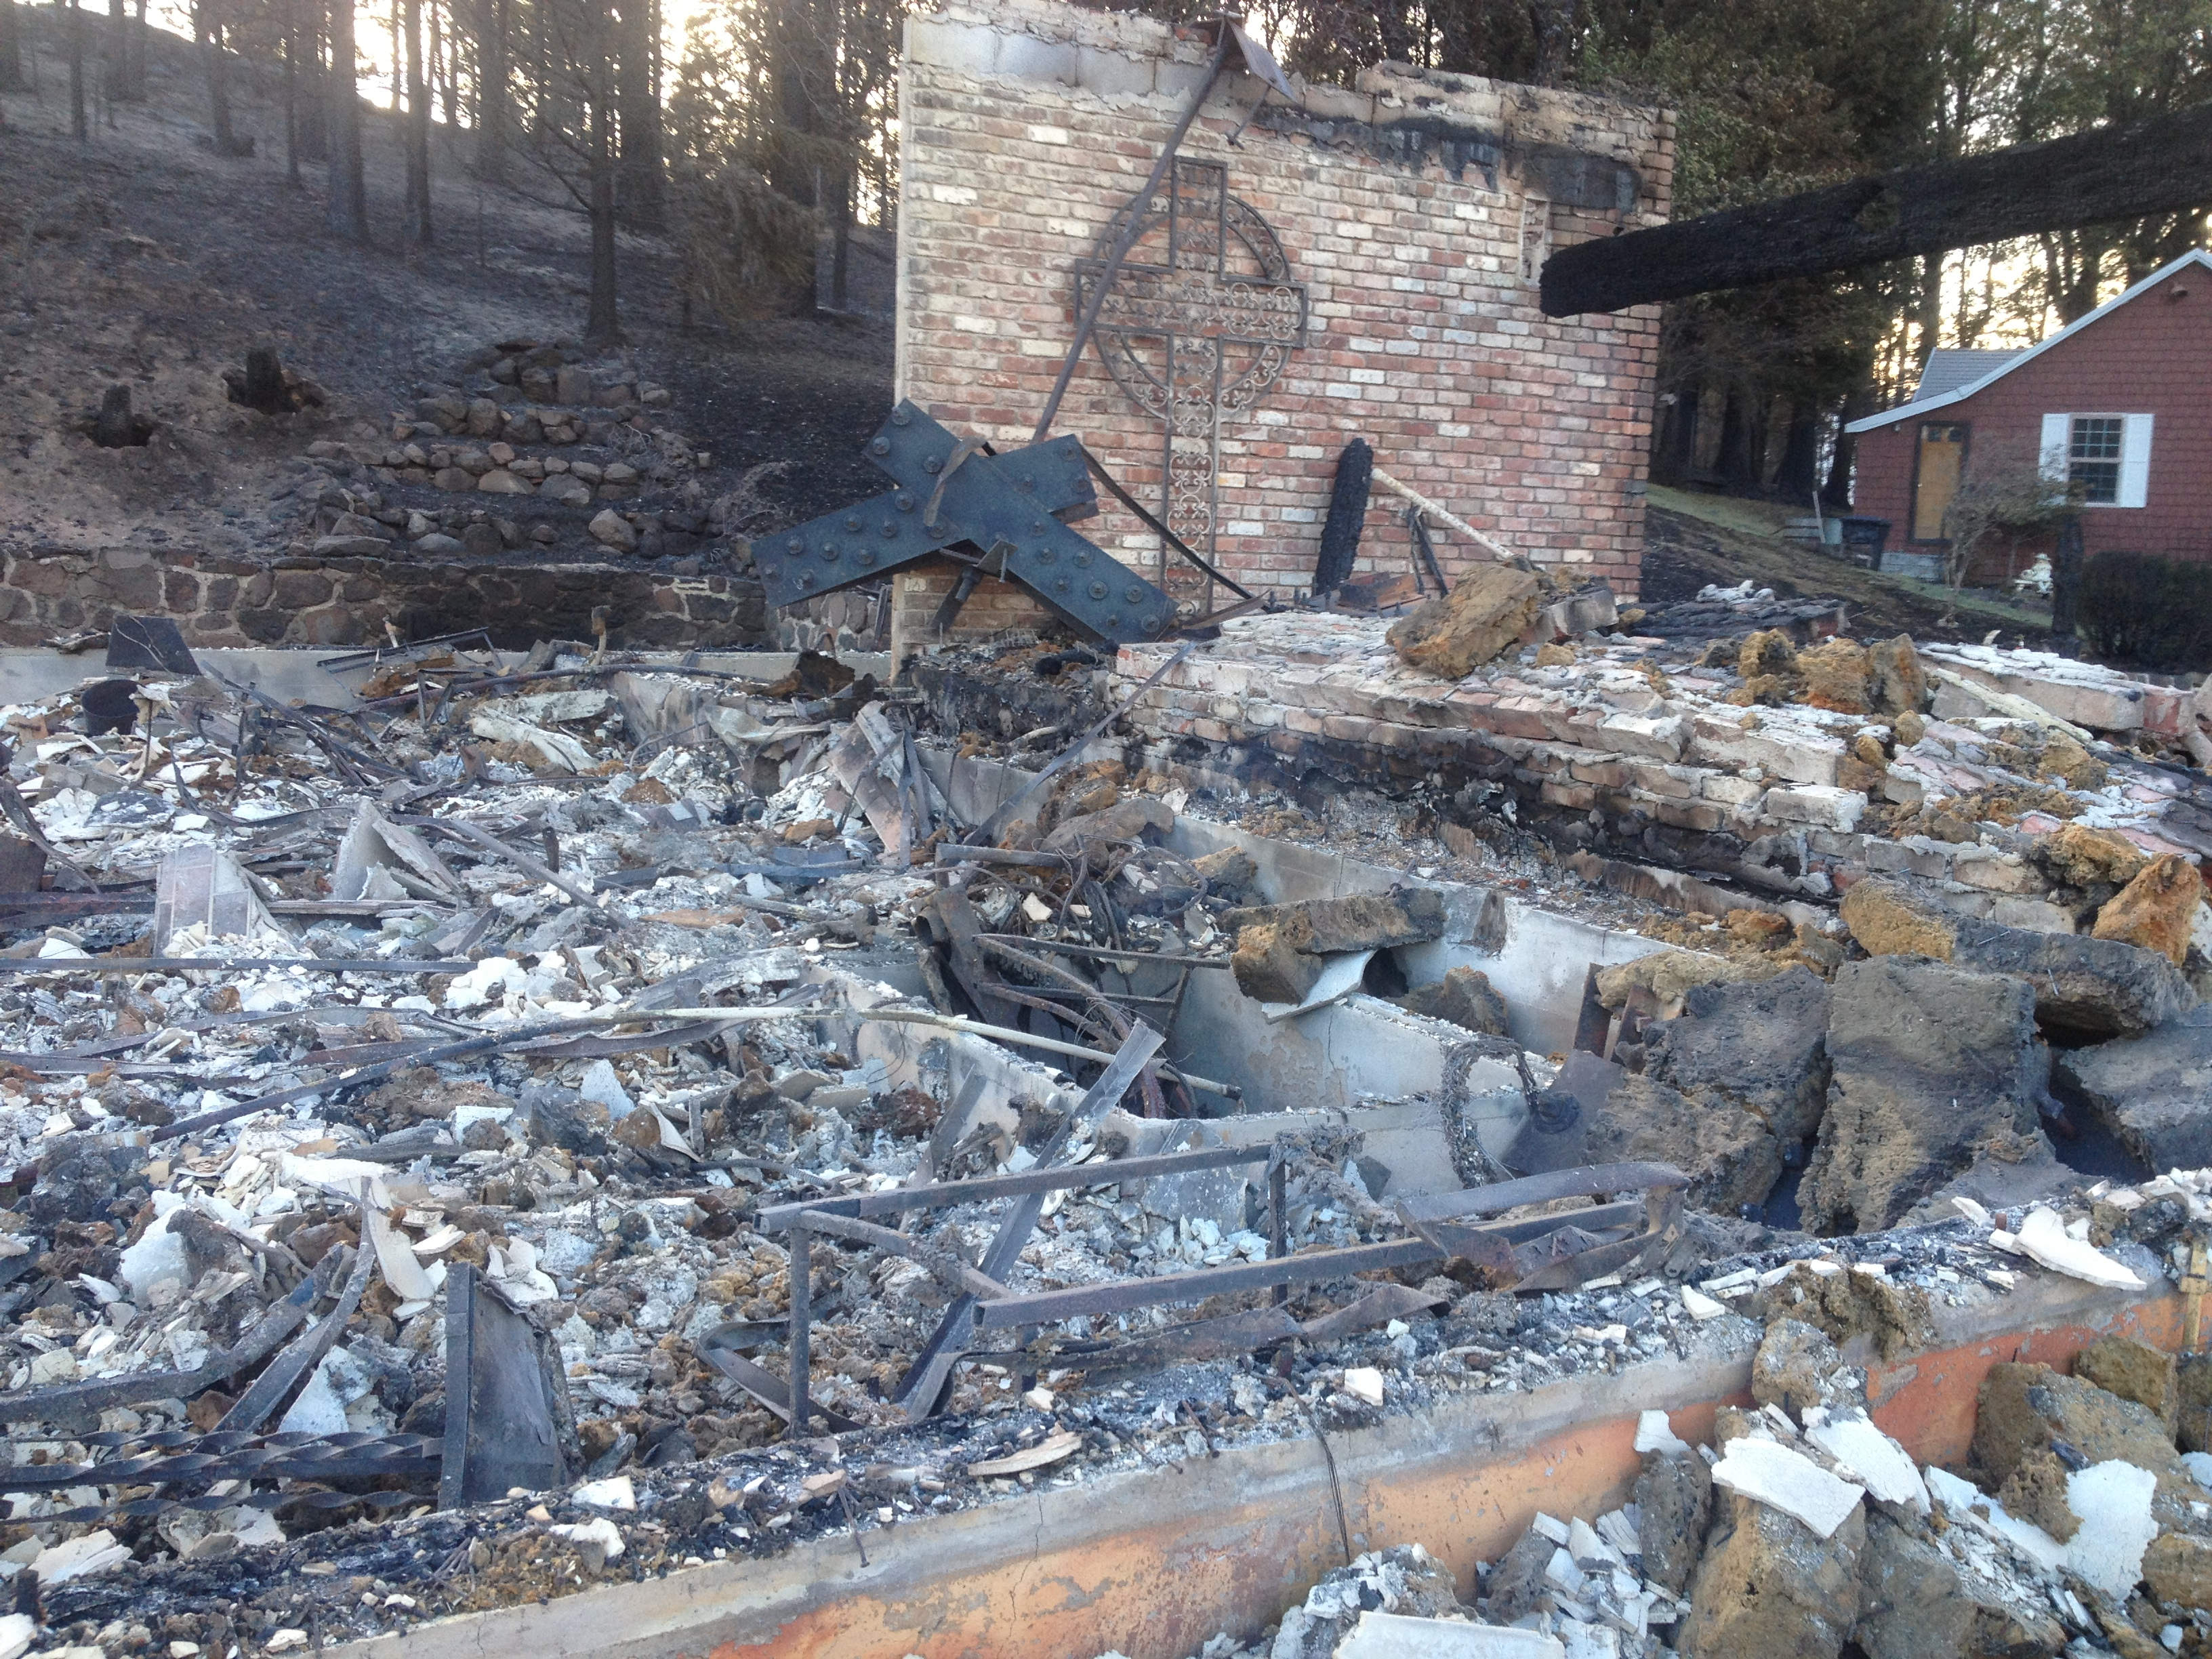 Catholic Church in Weed destroyed during Boles Fire. Sept. 17, 2014